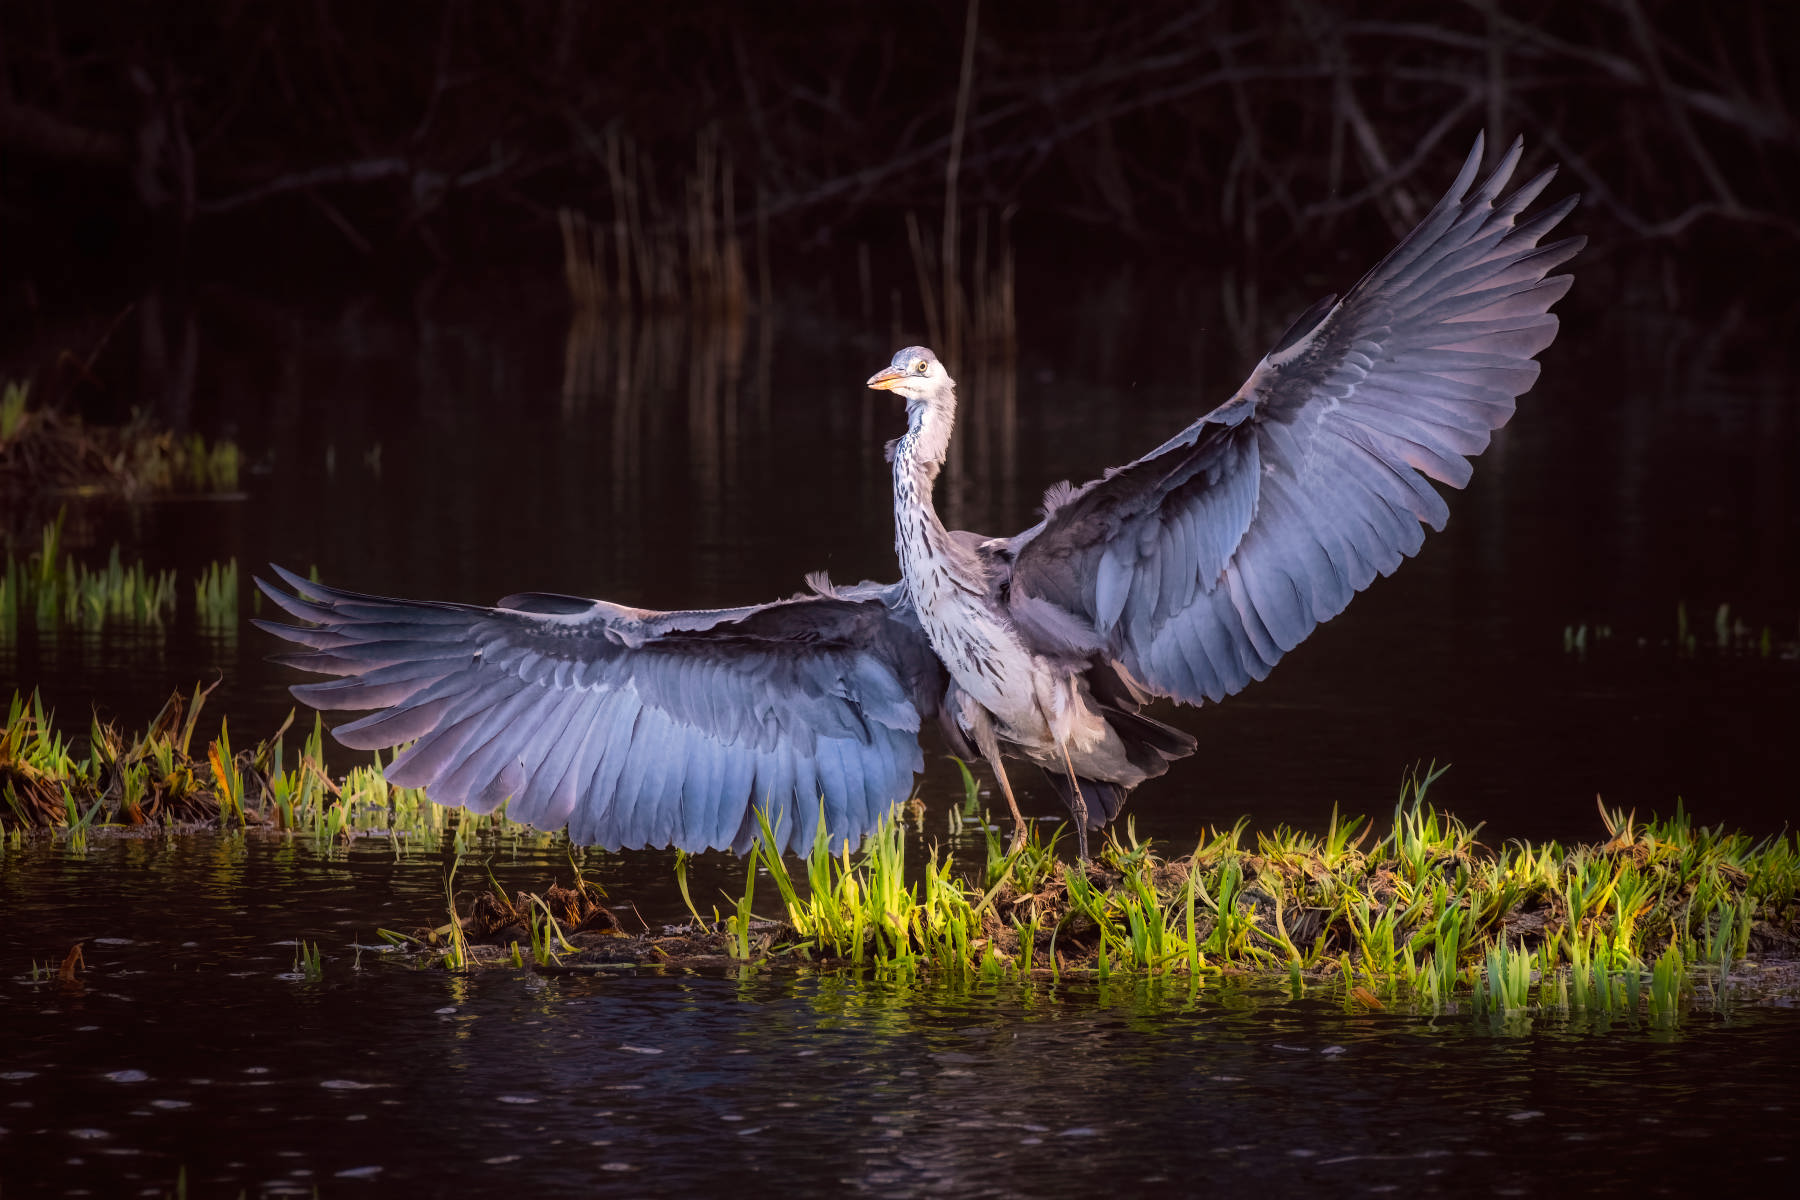 grey heron spreading its wings while landing amid sprouting irises